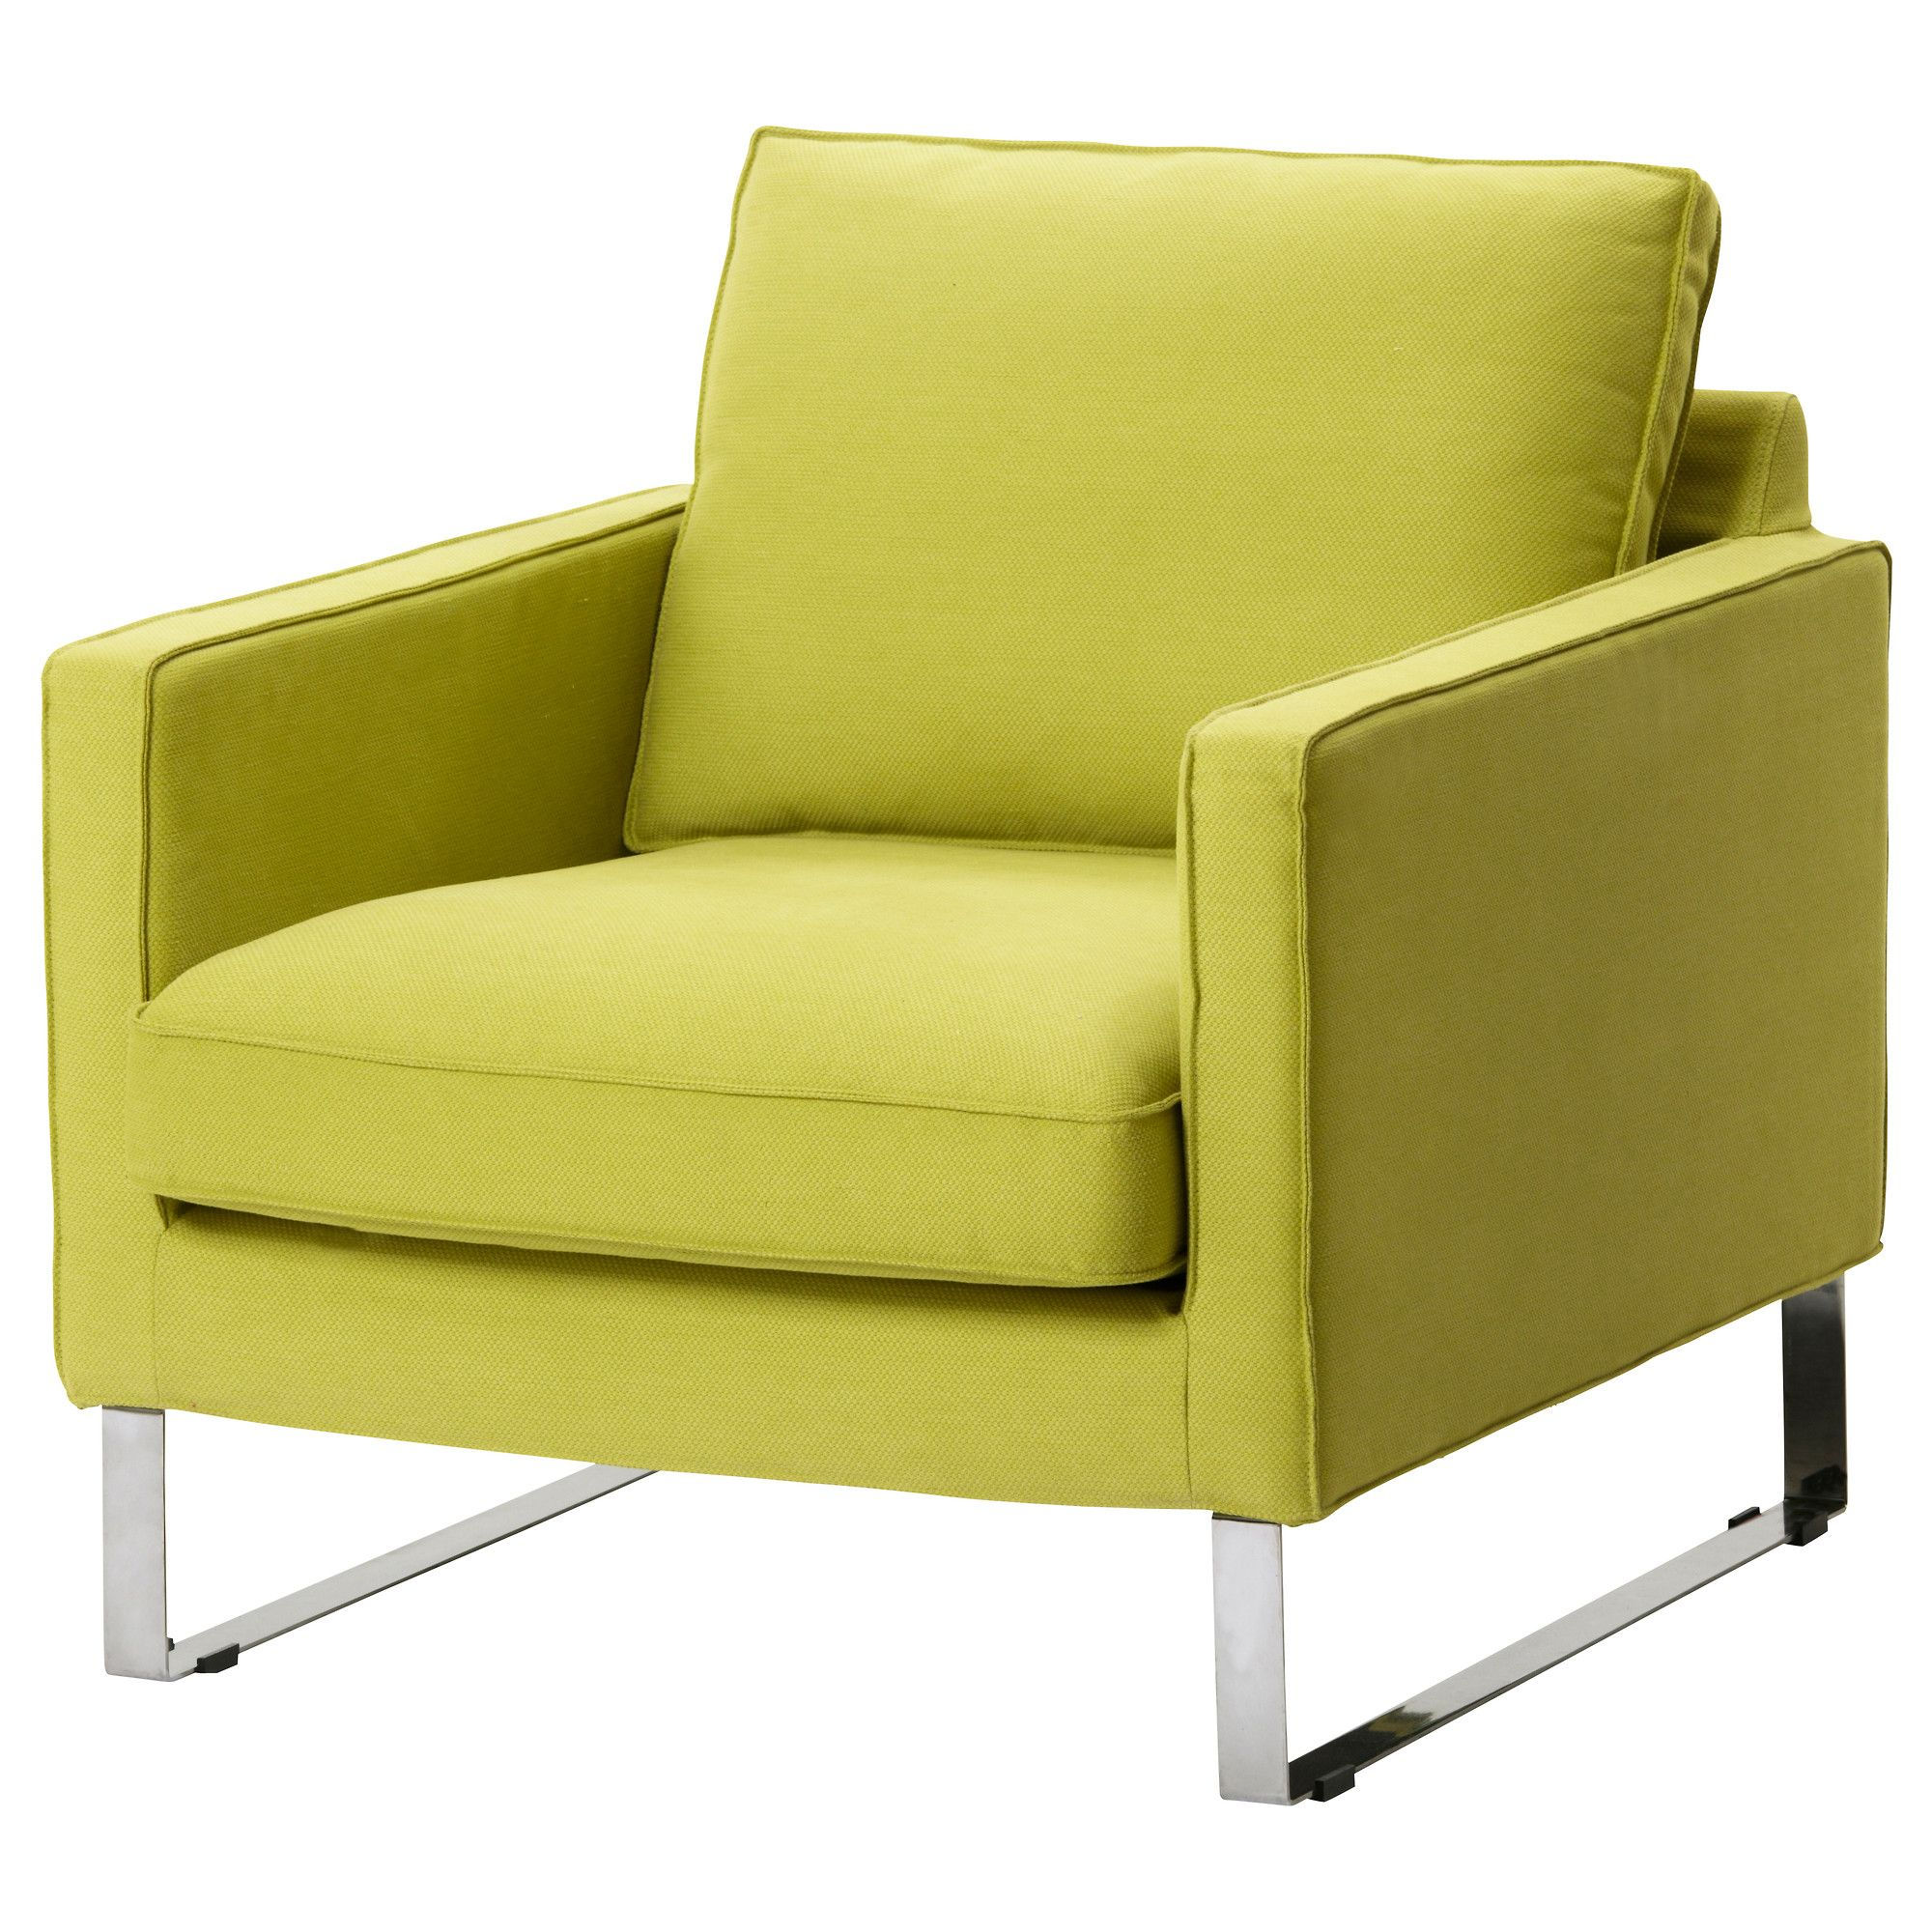 MELLBY Chair Dansbo yellow green IKEA